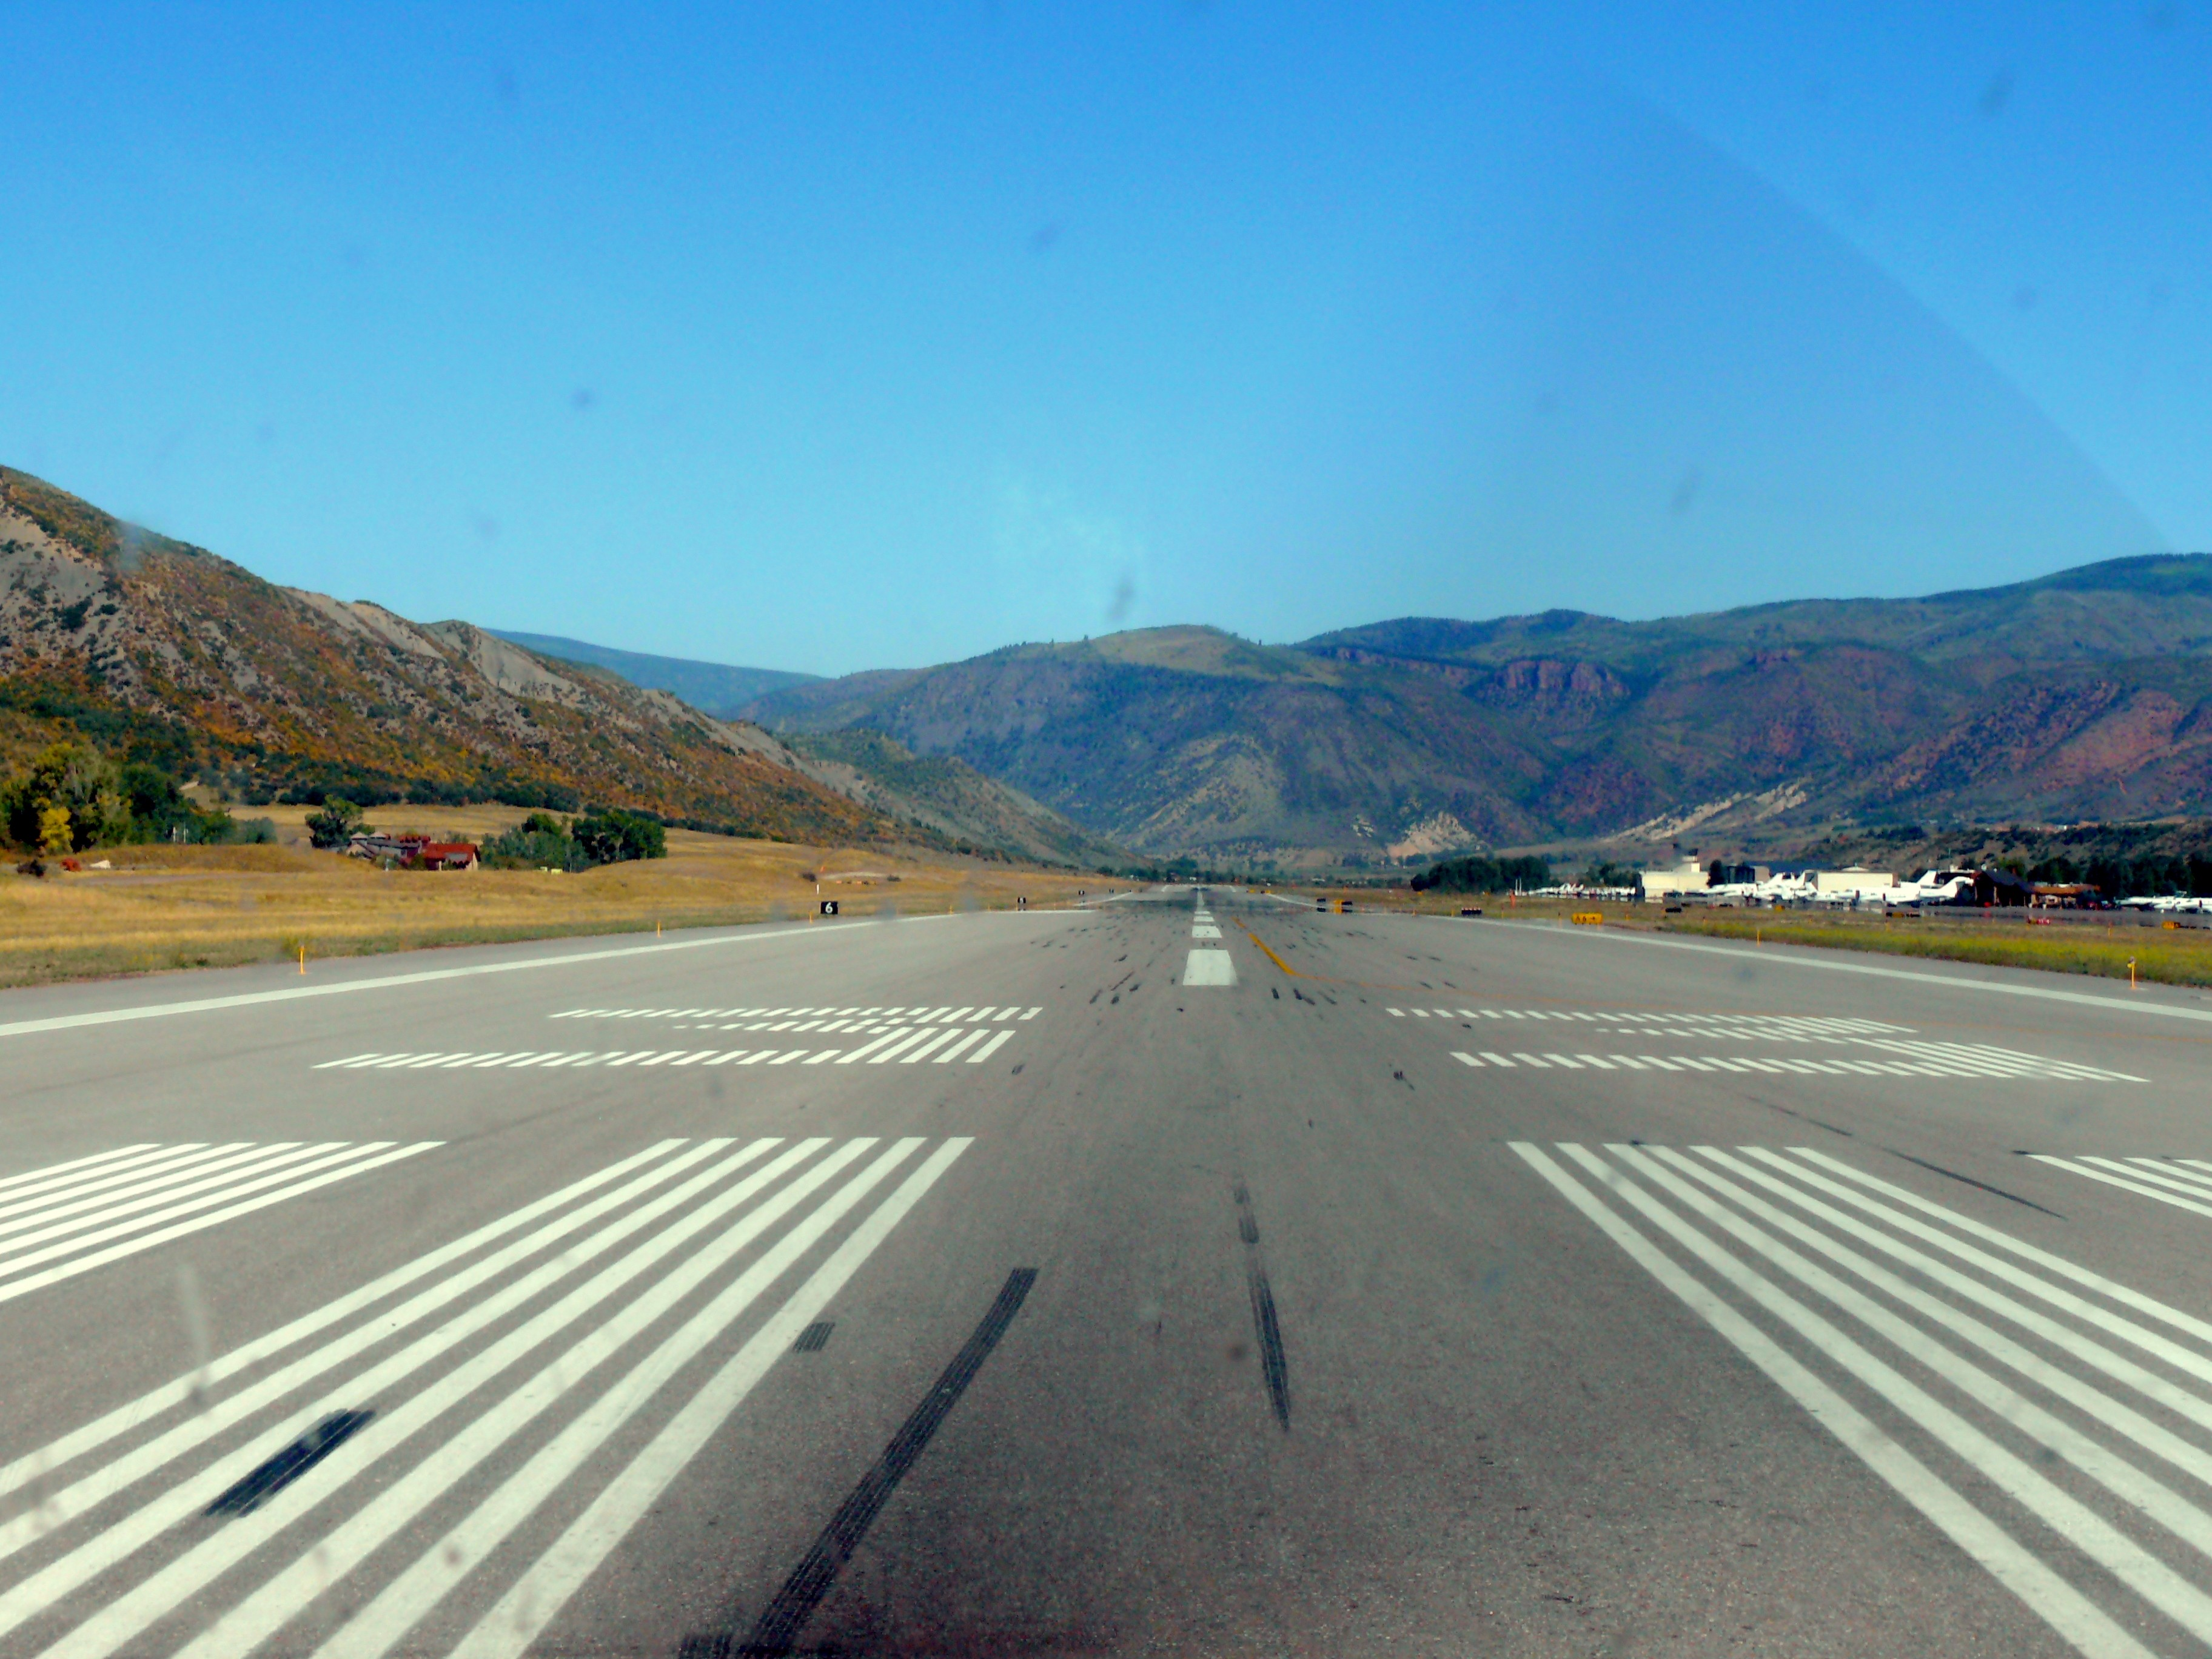 how to get ifr clearance at towered airport